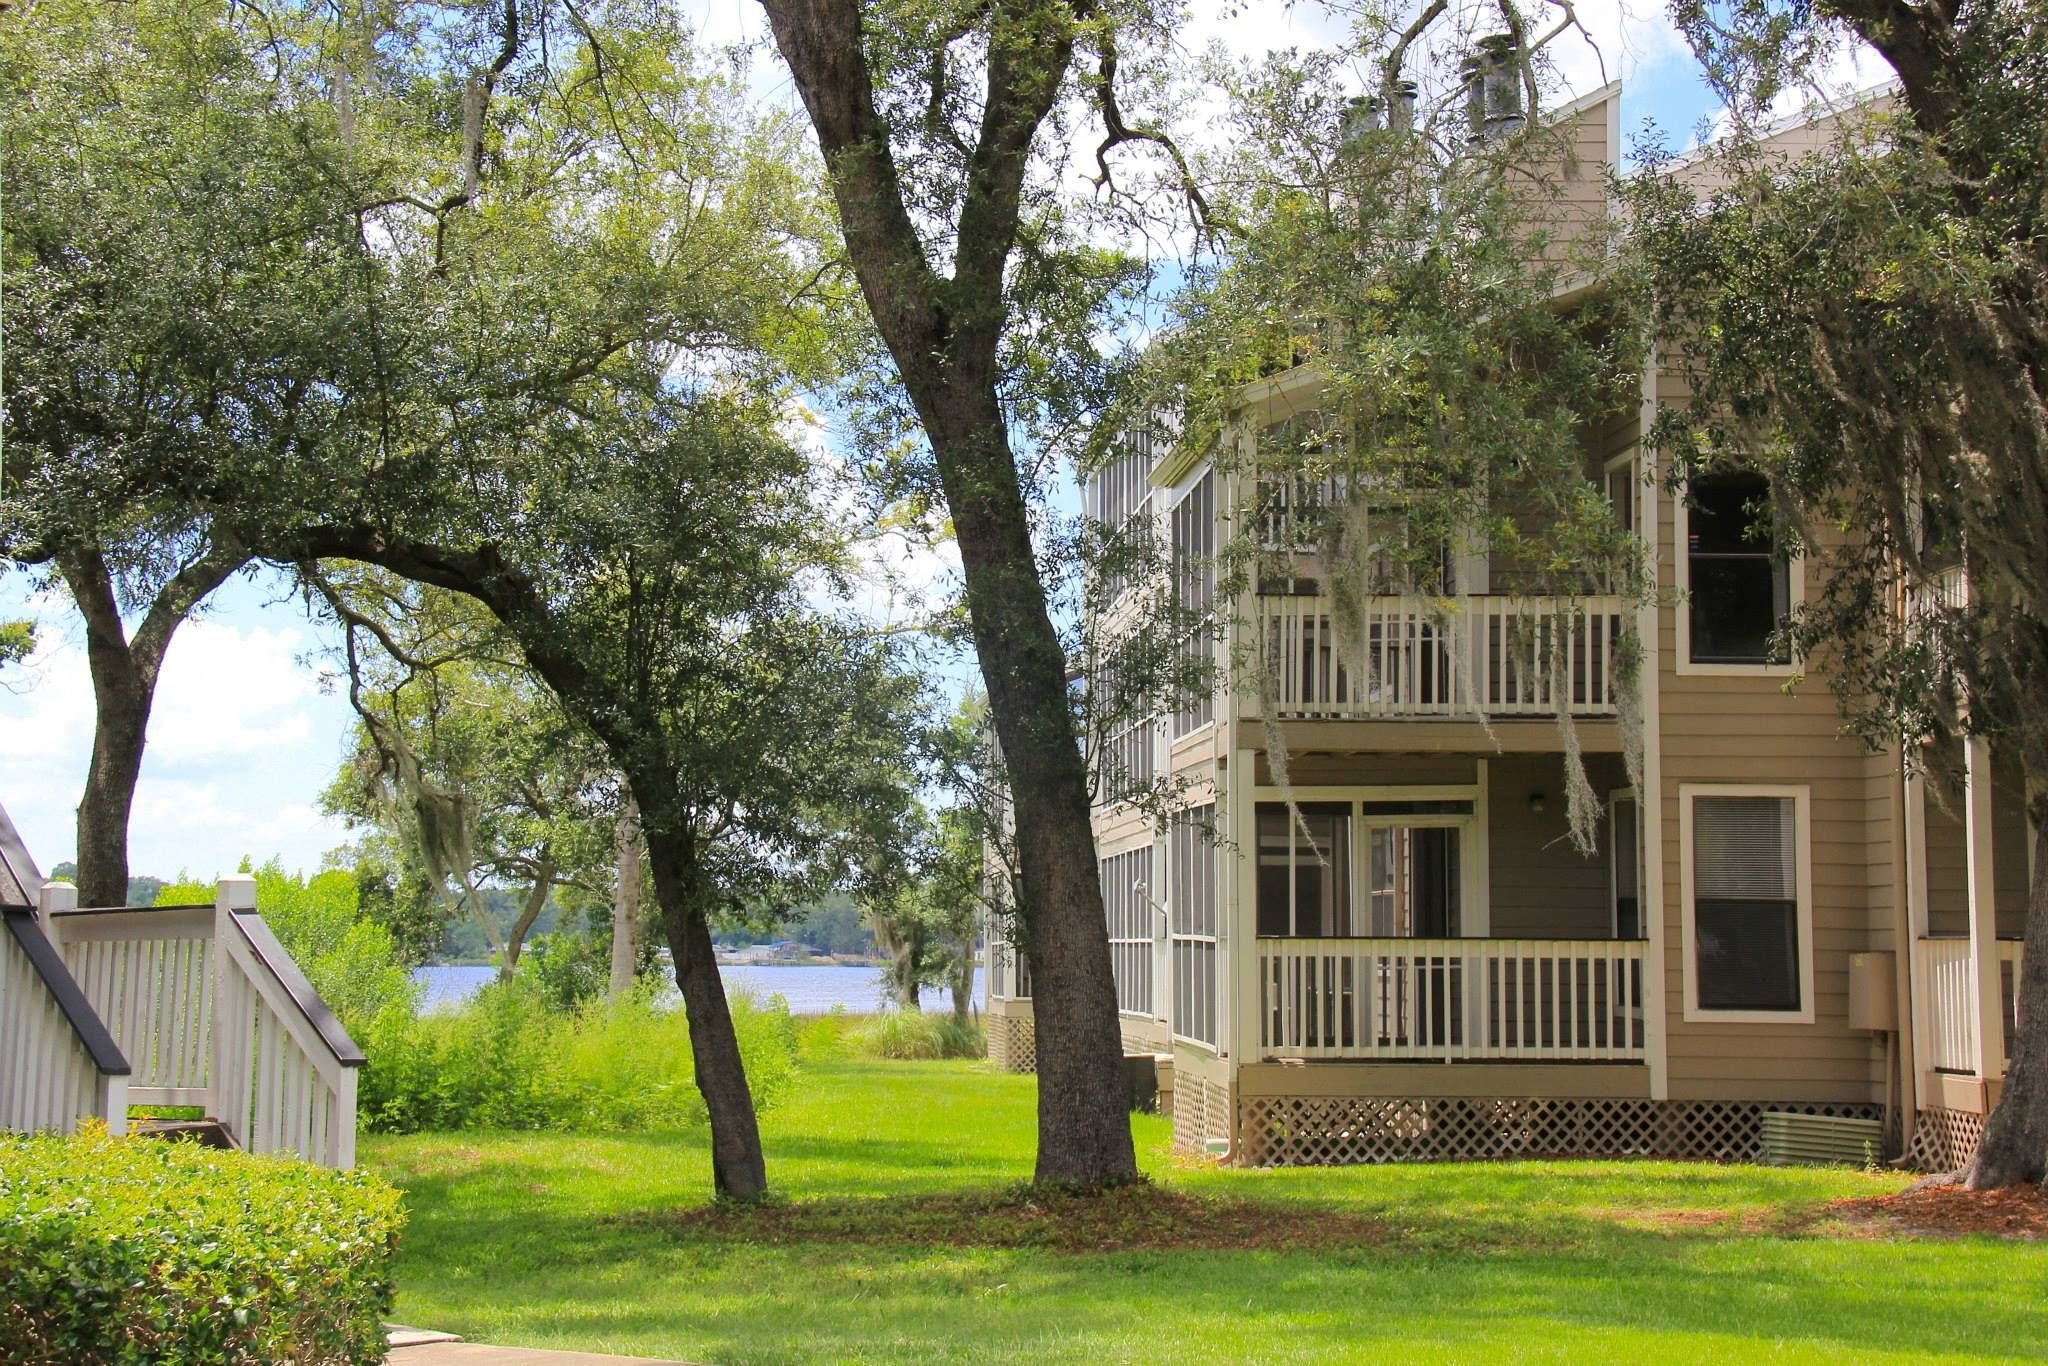 8 Island Pointe Apartments Ideas Jacksonville Apartments Waterfront Apartment Guide